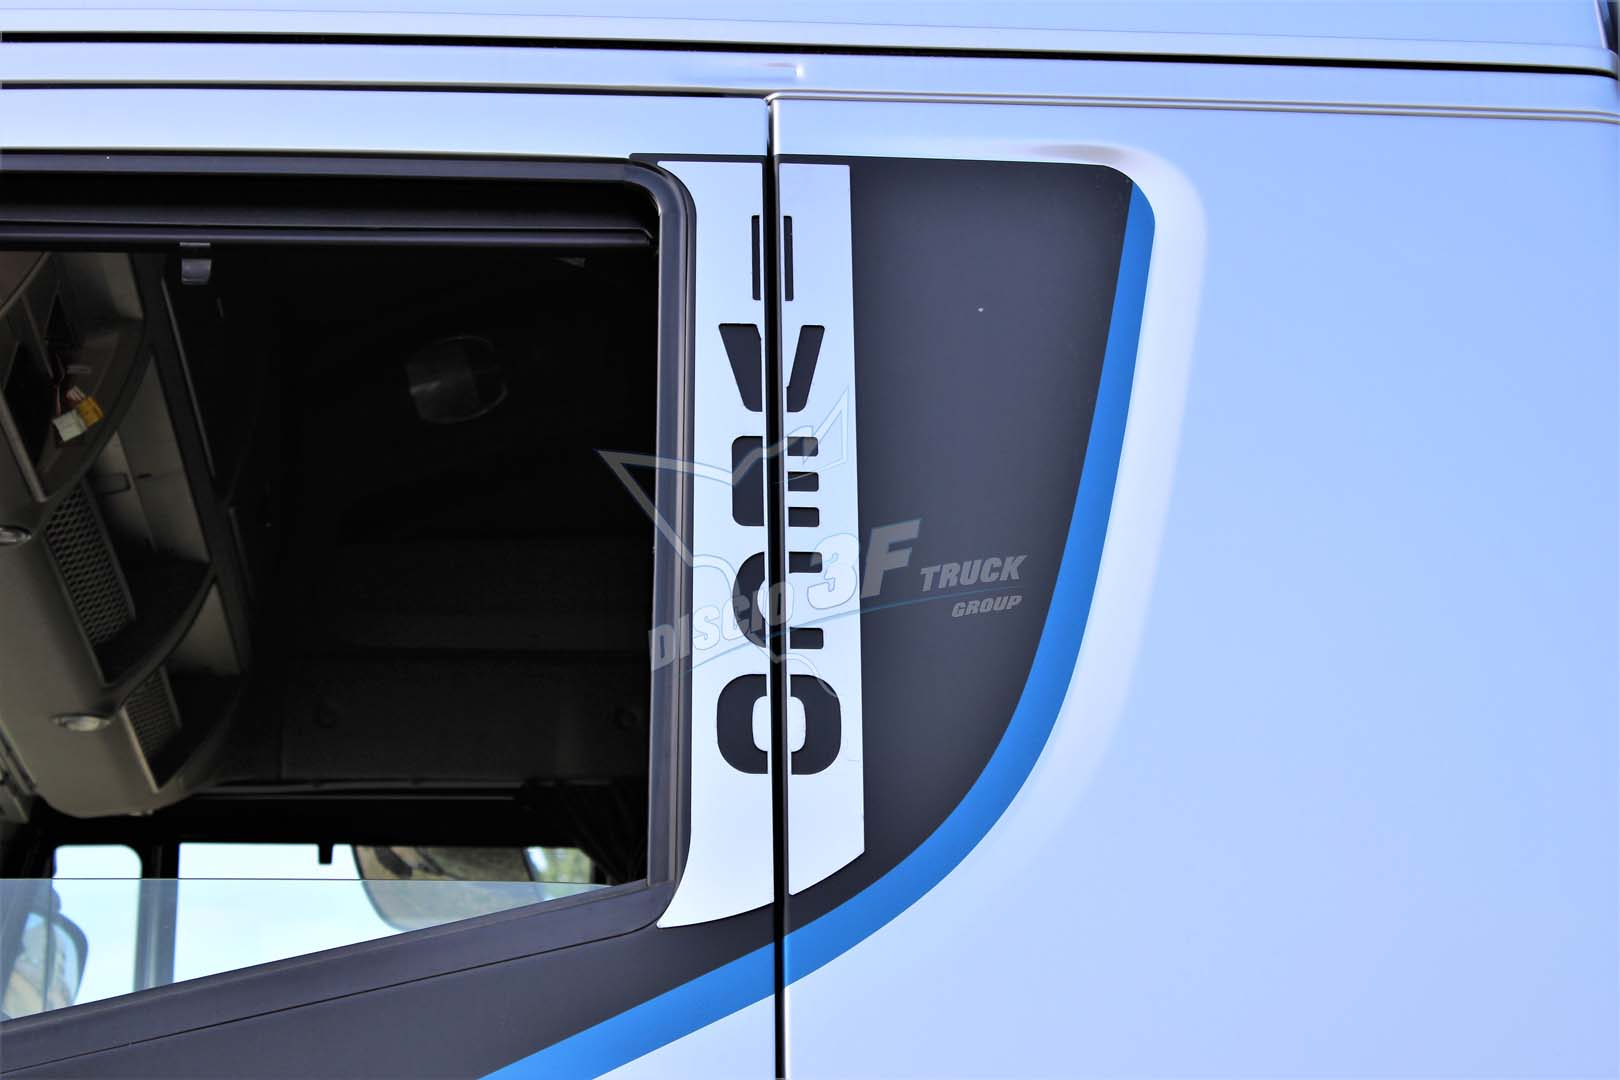 Placche Portiera, Iveco Hi-Way.